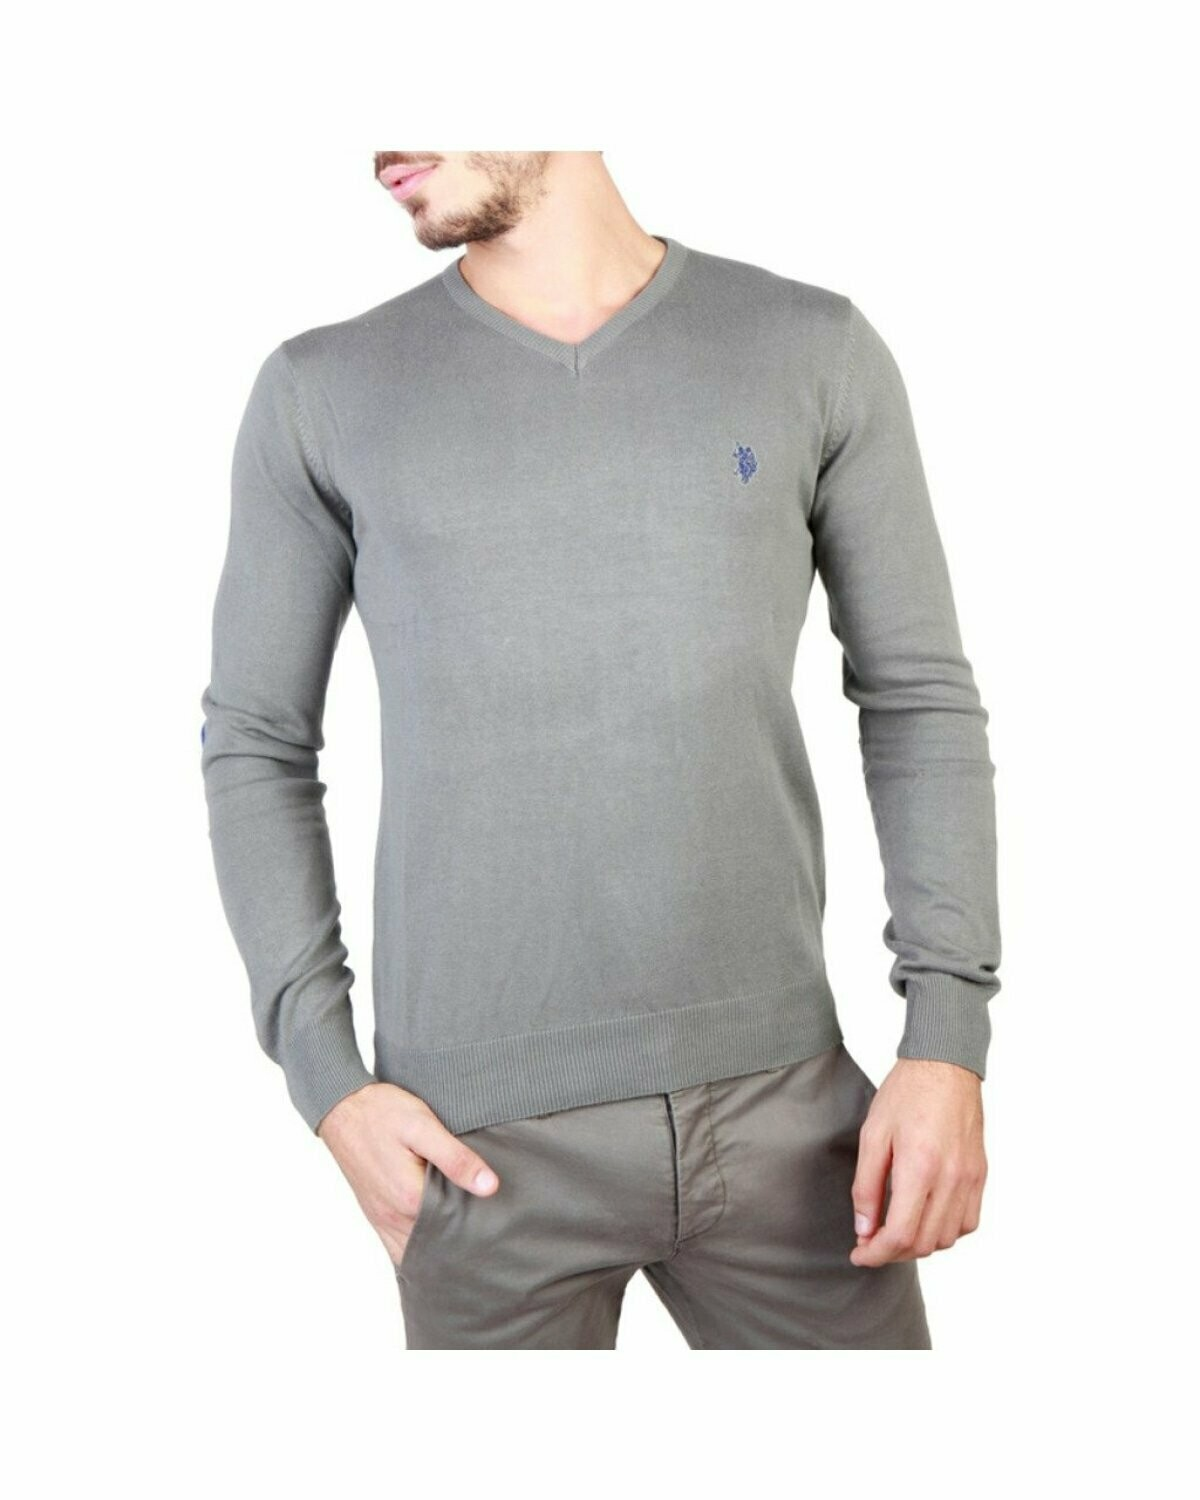 US Polo Assn Men's V Neck Cotton Sweater